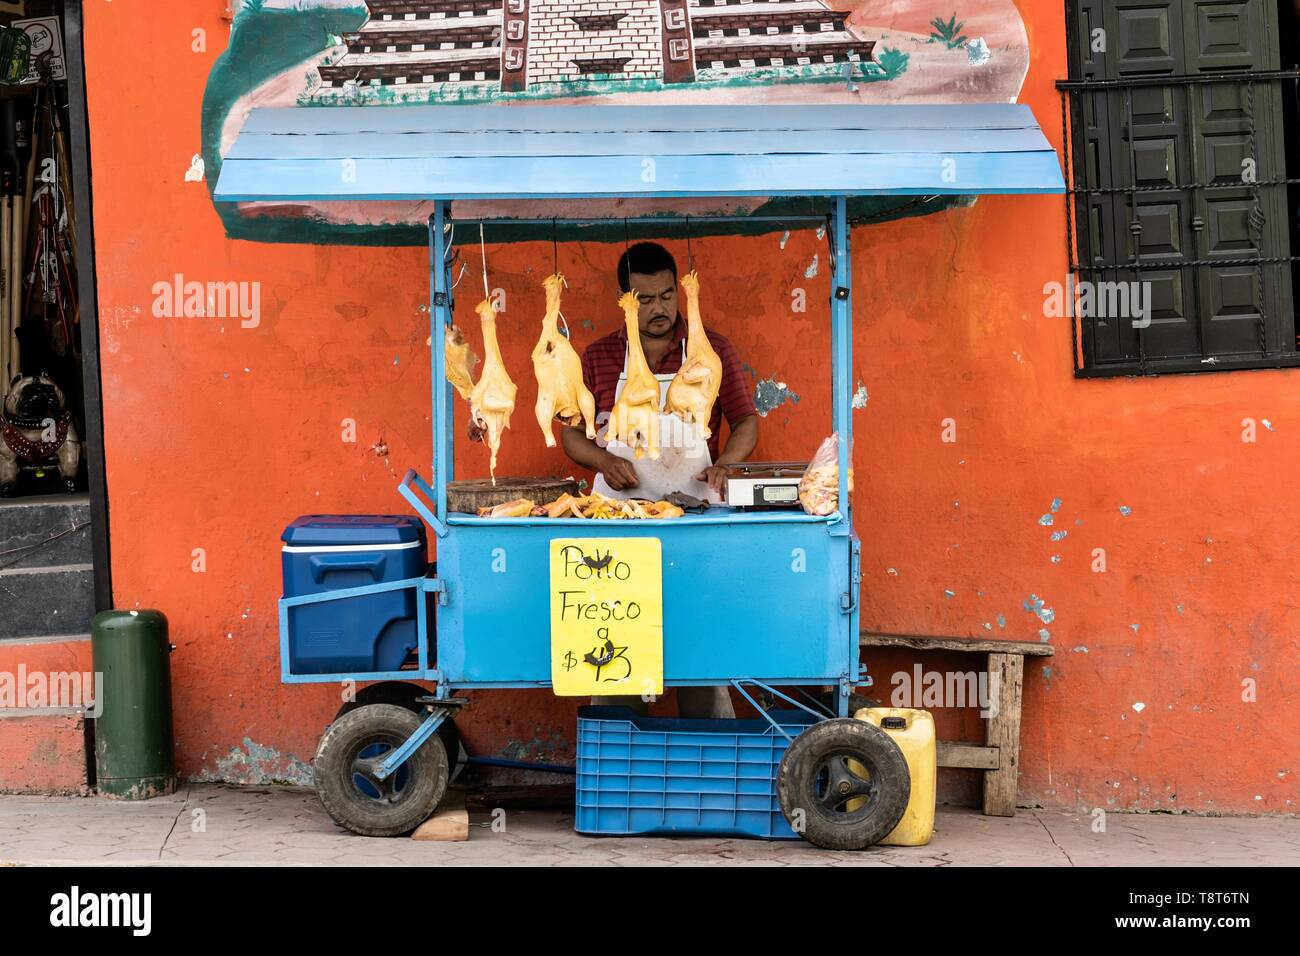 A Mexican food vendor sells fresh chickens outside the central Market in Papantla, Veracruz, Mexico. Stock Photo